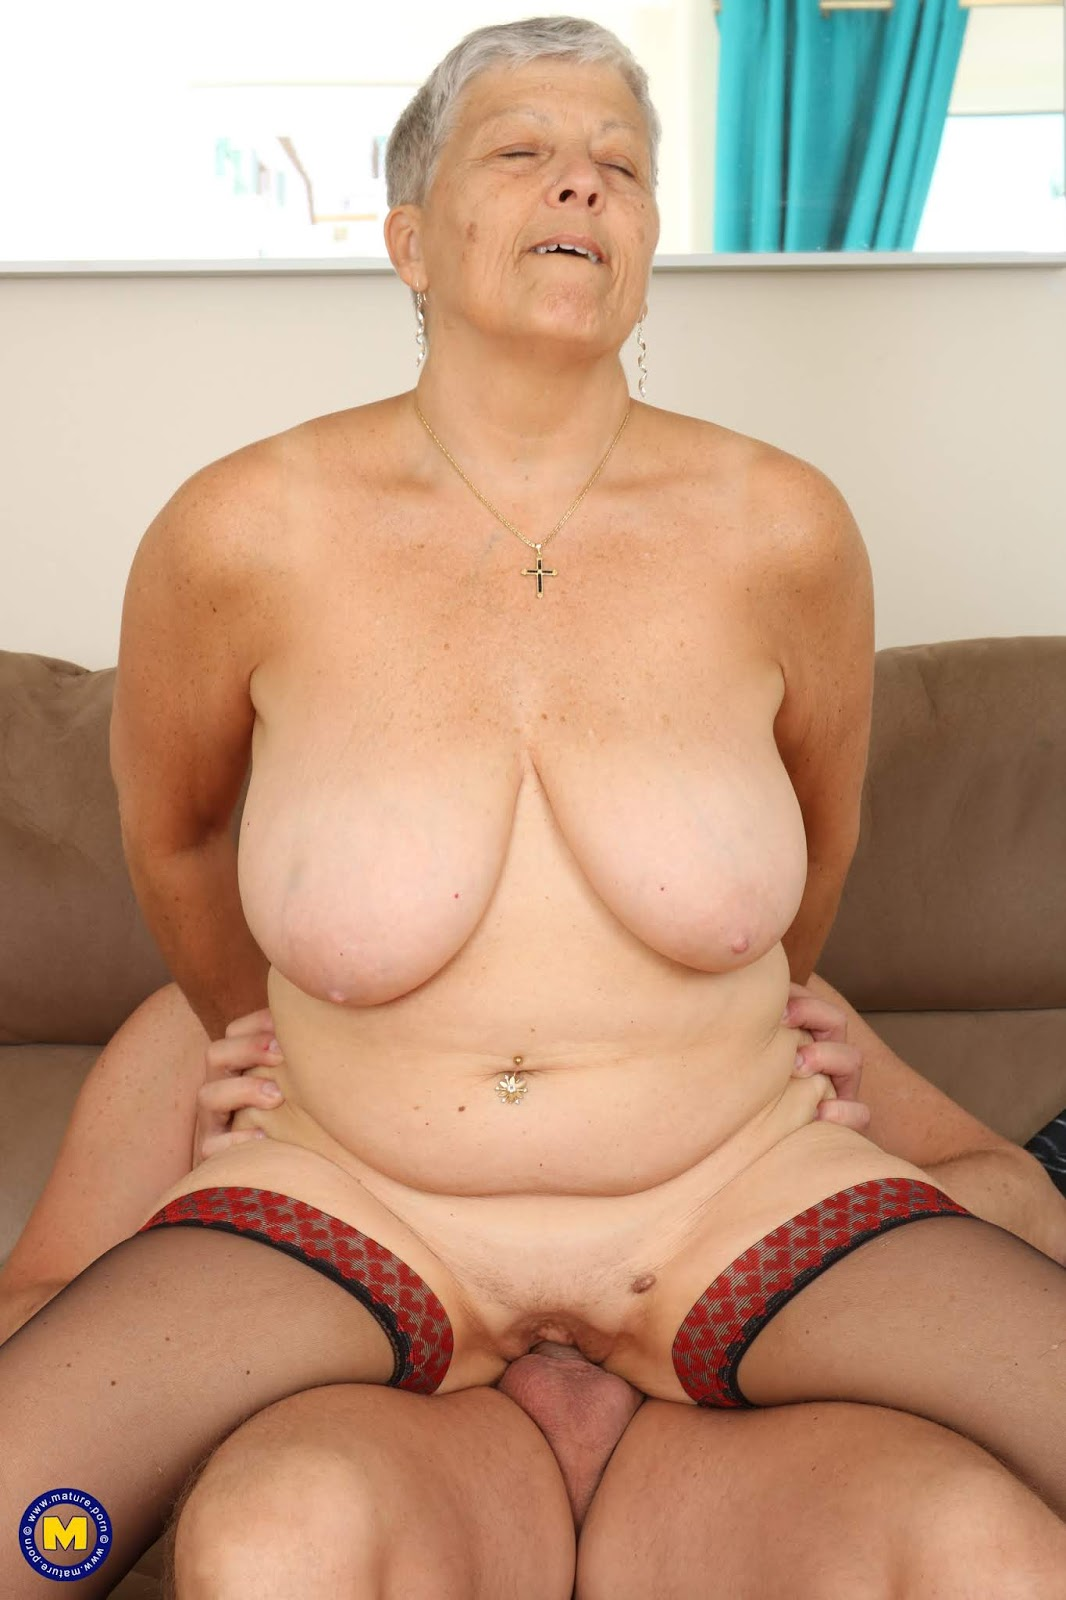 Archive Of Old Women Savana Busty Mature Woman Uk Porn Star-3042